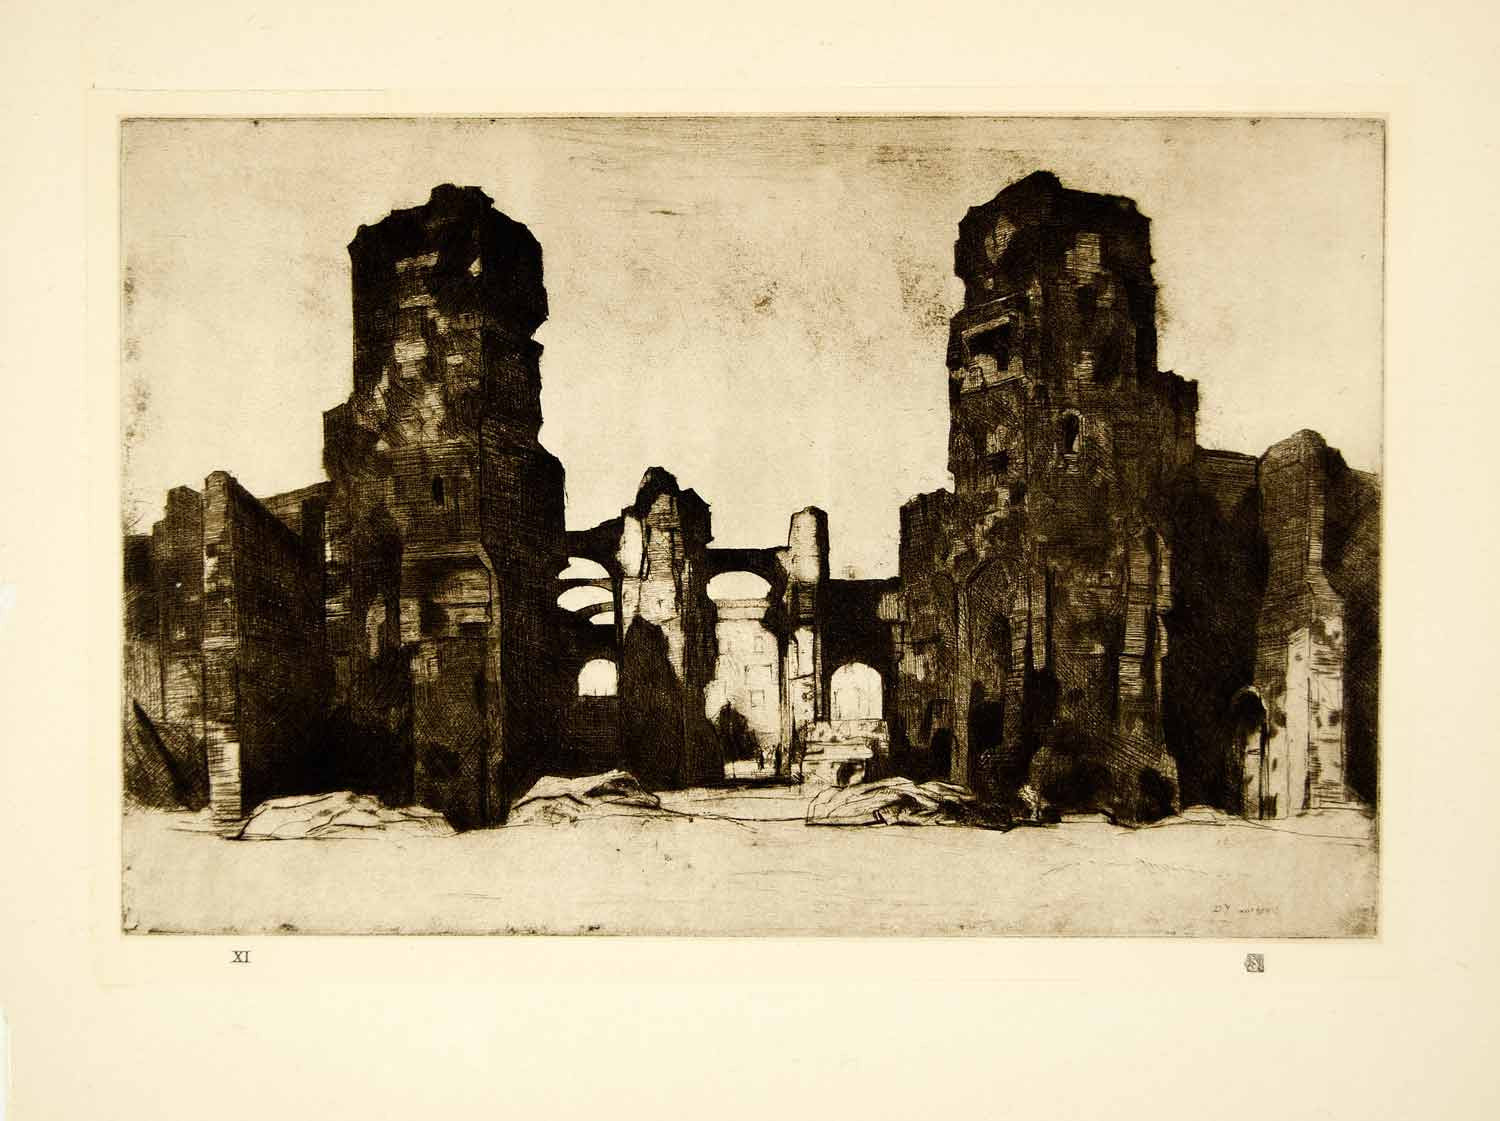 the baths of caracalla essay The baths of caracalla the baths of caracalla were enormous buildings, with huge frescoed vaults covering the massive rooms constructed which began in 212ad and took approximately five year to complete.